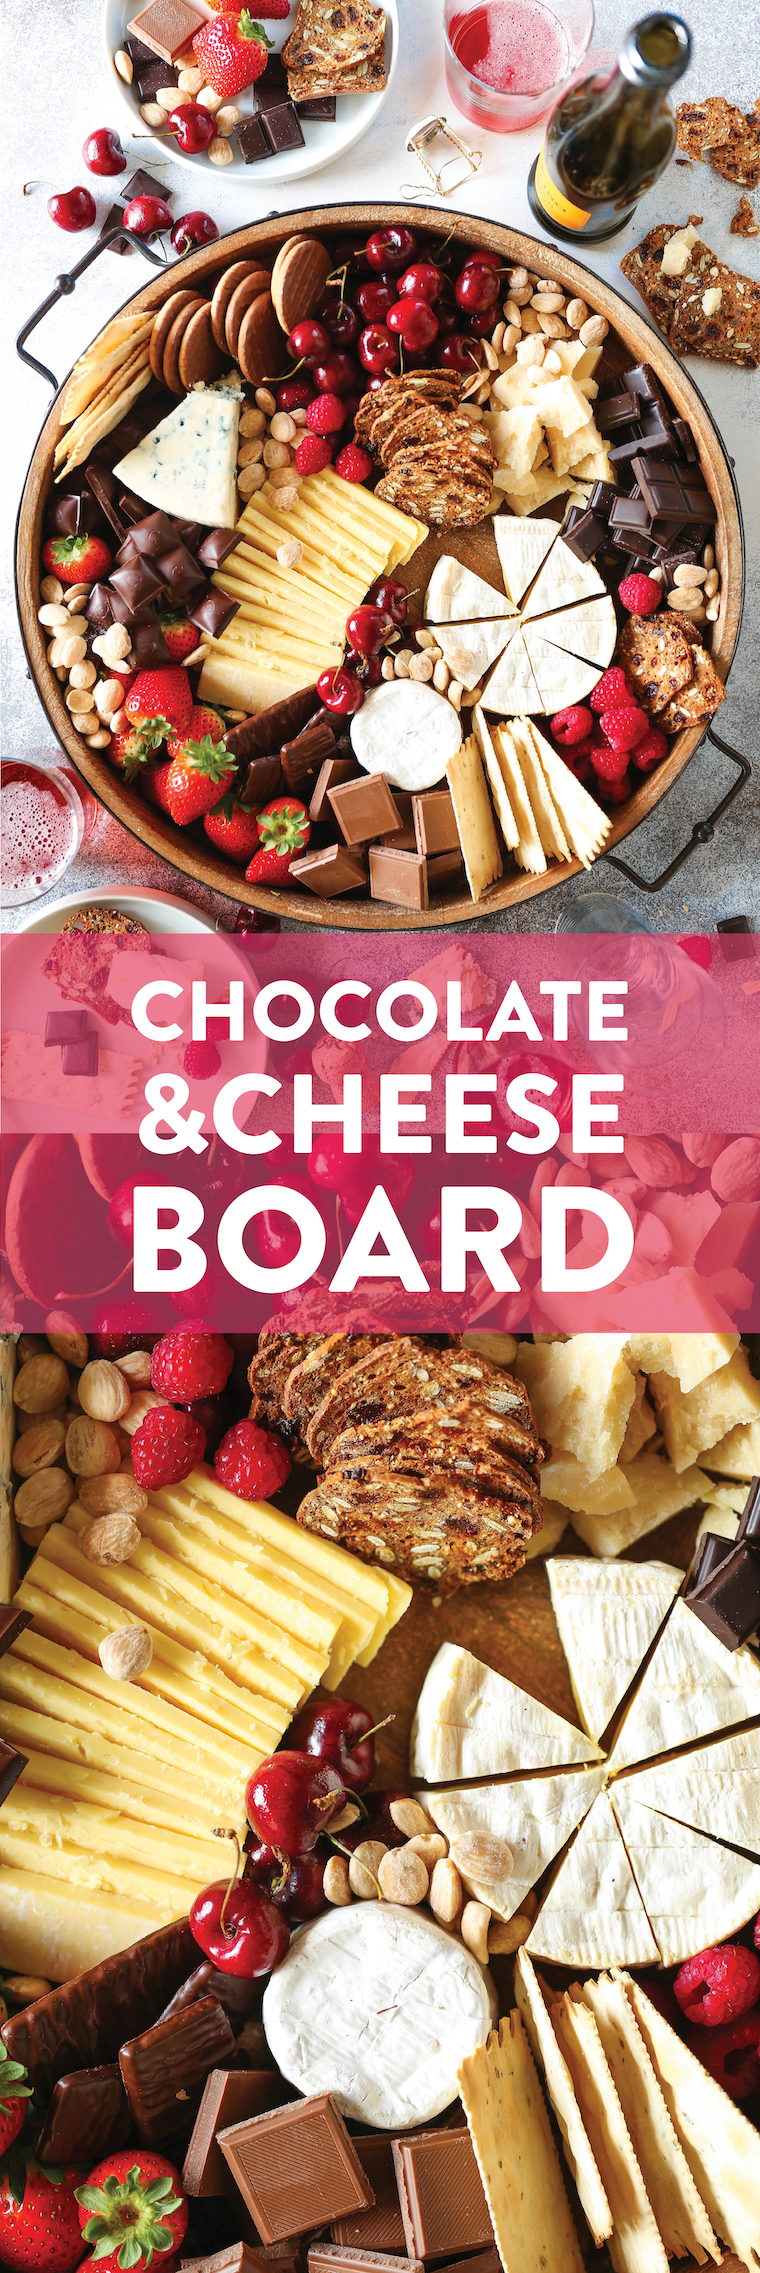 Chocolate and Cheese Board - Dark chocolate, cheeses, crackers, cherries + fresh berries. The most epic dessert cheese board for any date or get-together!